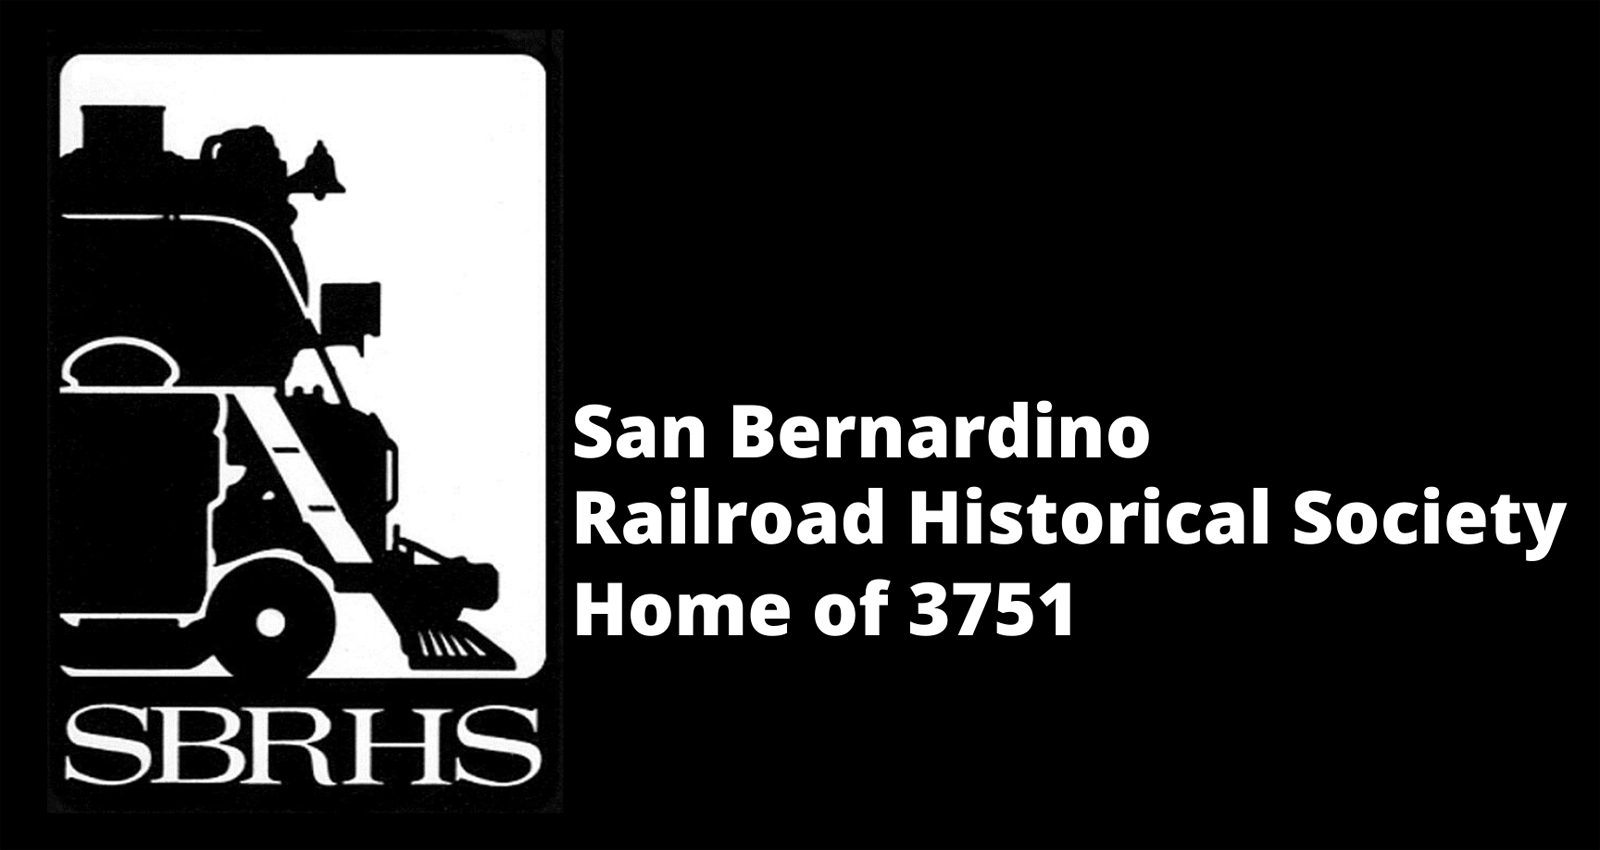 San Bernardino Railroad Historical Society